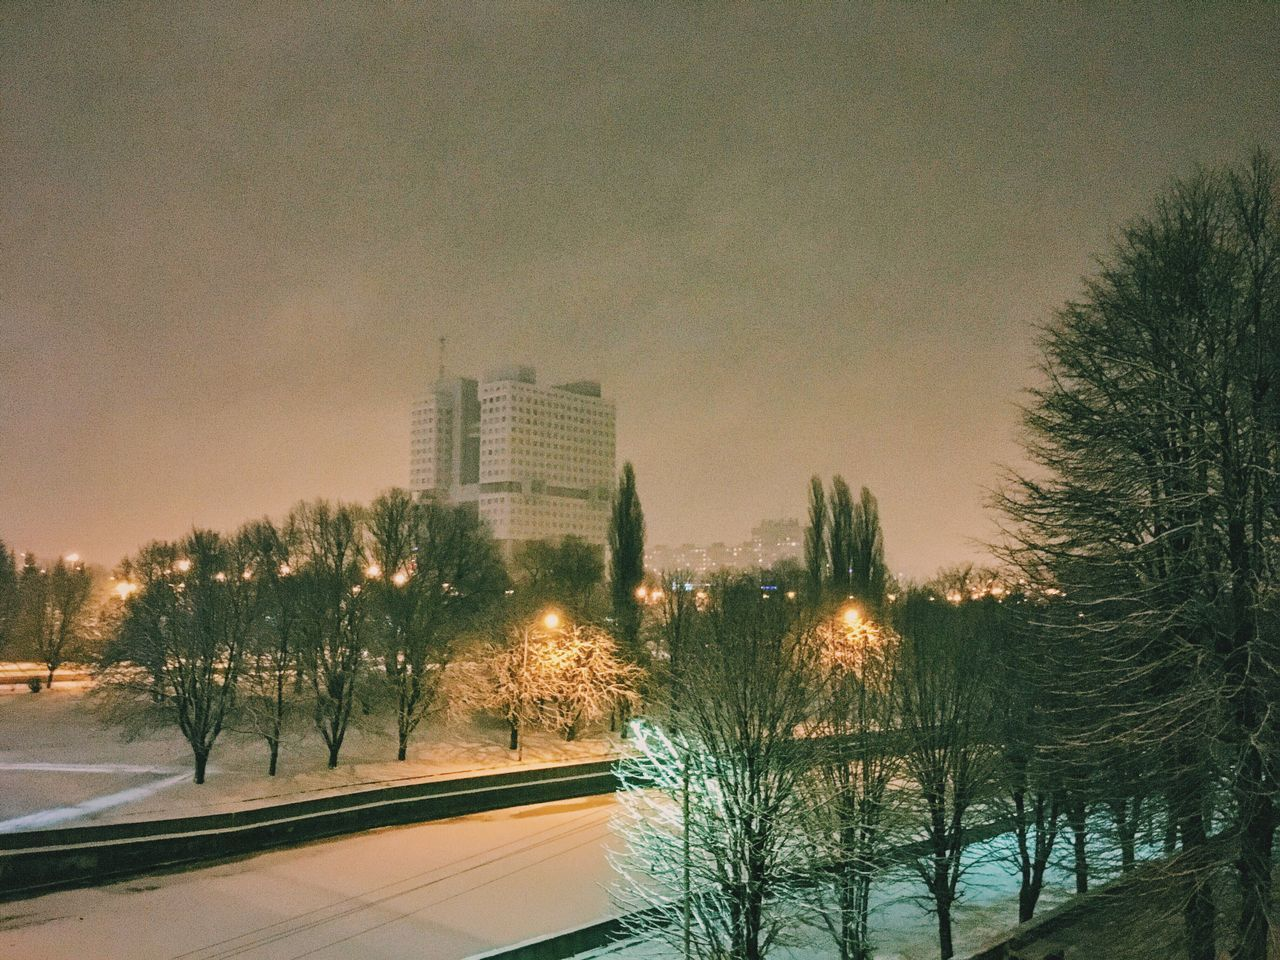 cold temperature, snow, architecture, built structure, winter, tree, building exterior, sky, bare tree, no people, outdoors, nature, city, growth, skyscraper, day